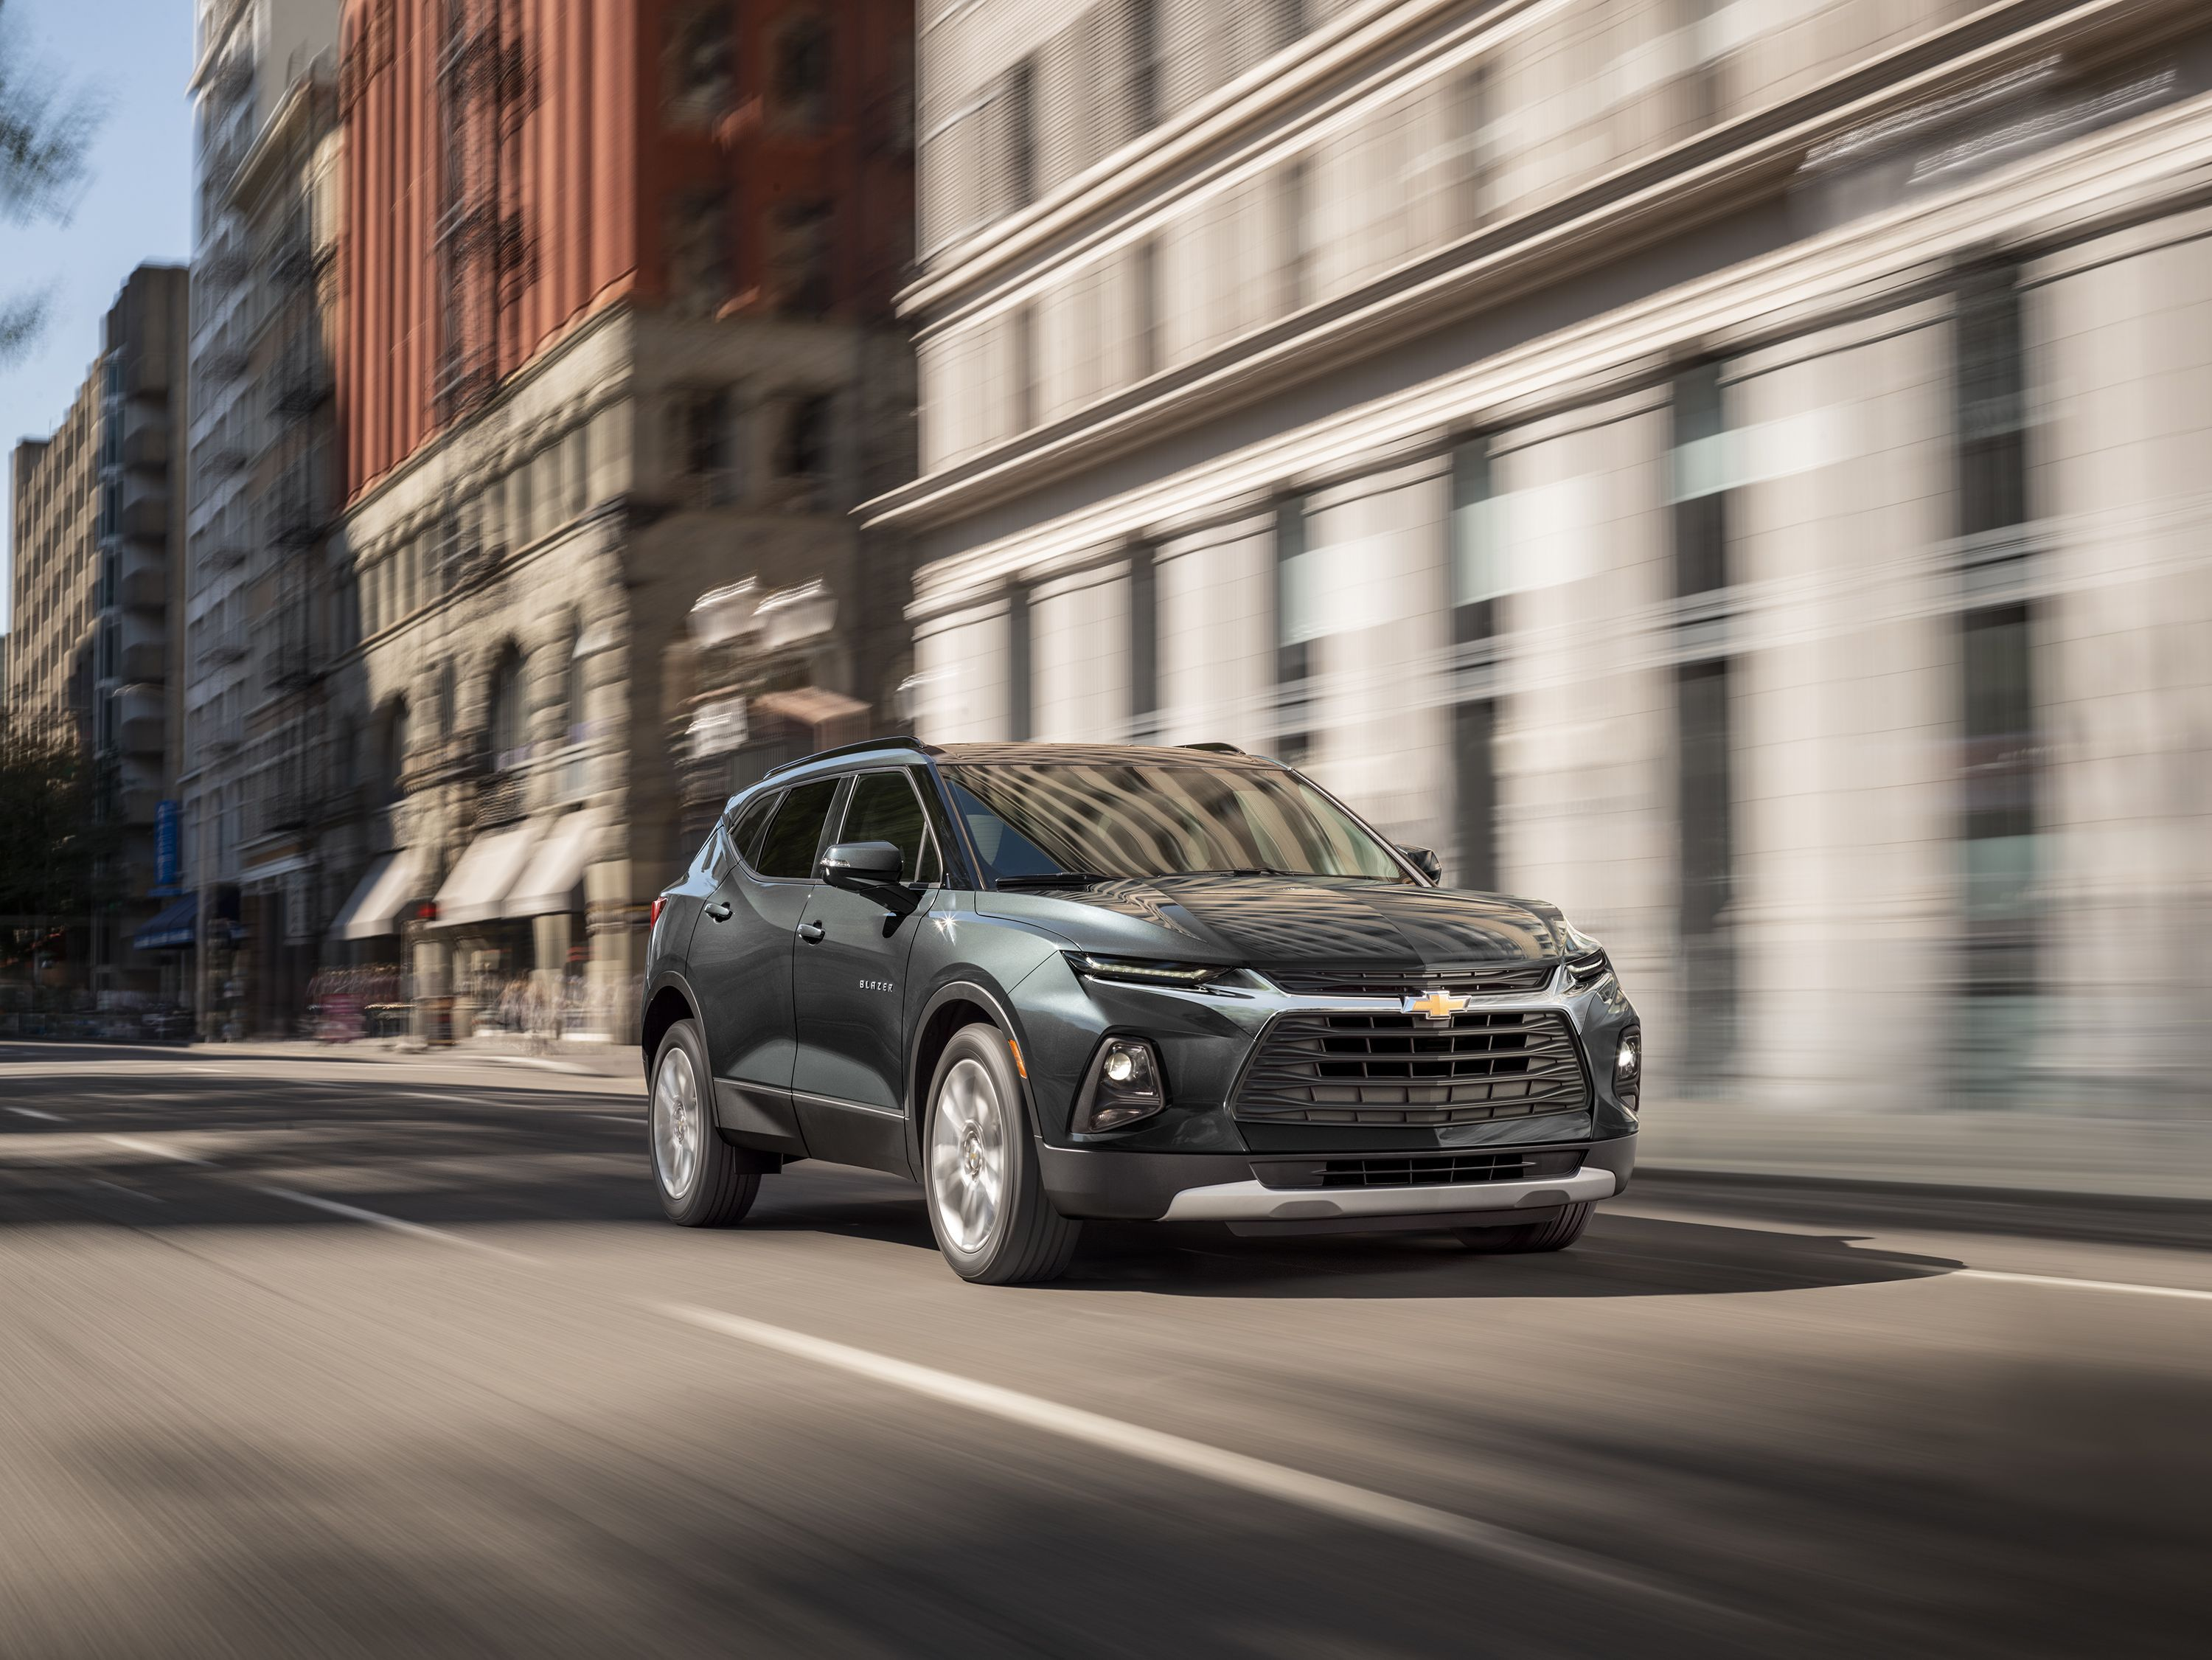 2020 Chevy Blazer Adds Turbo 2 0l Four Cylinder Starting At 33 995 Sporty Suv Mid Size Suv Chevrolet